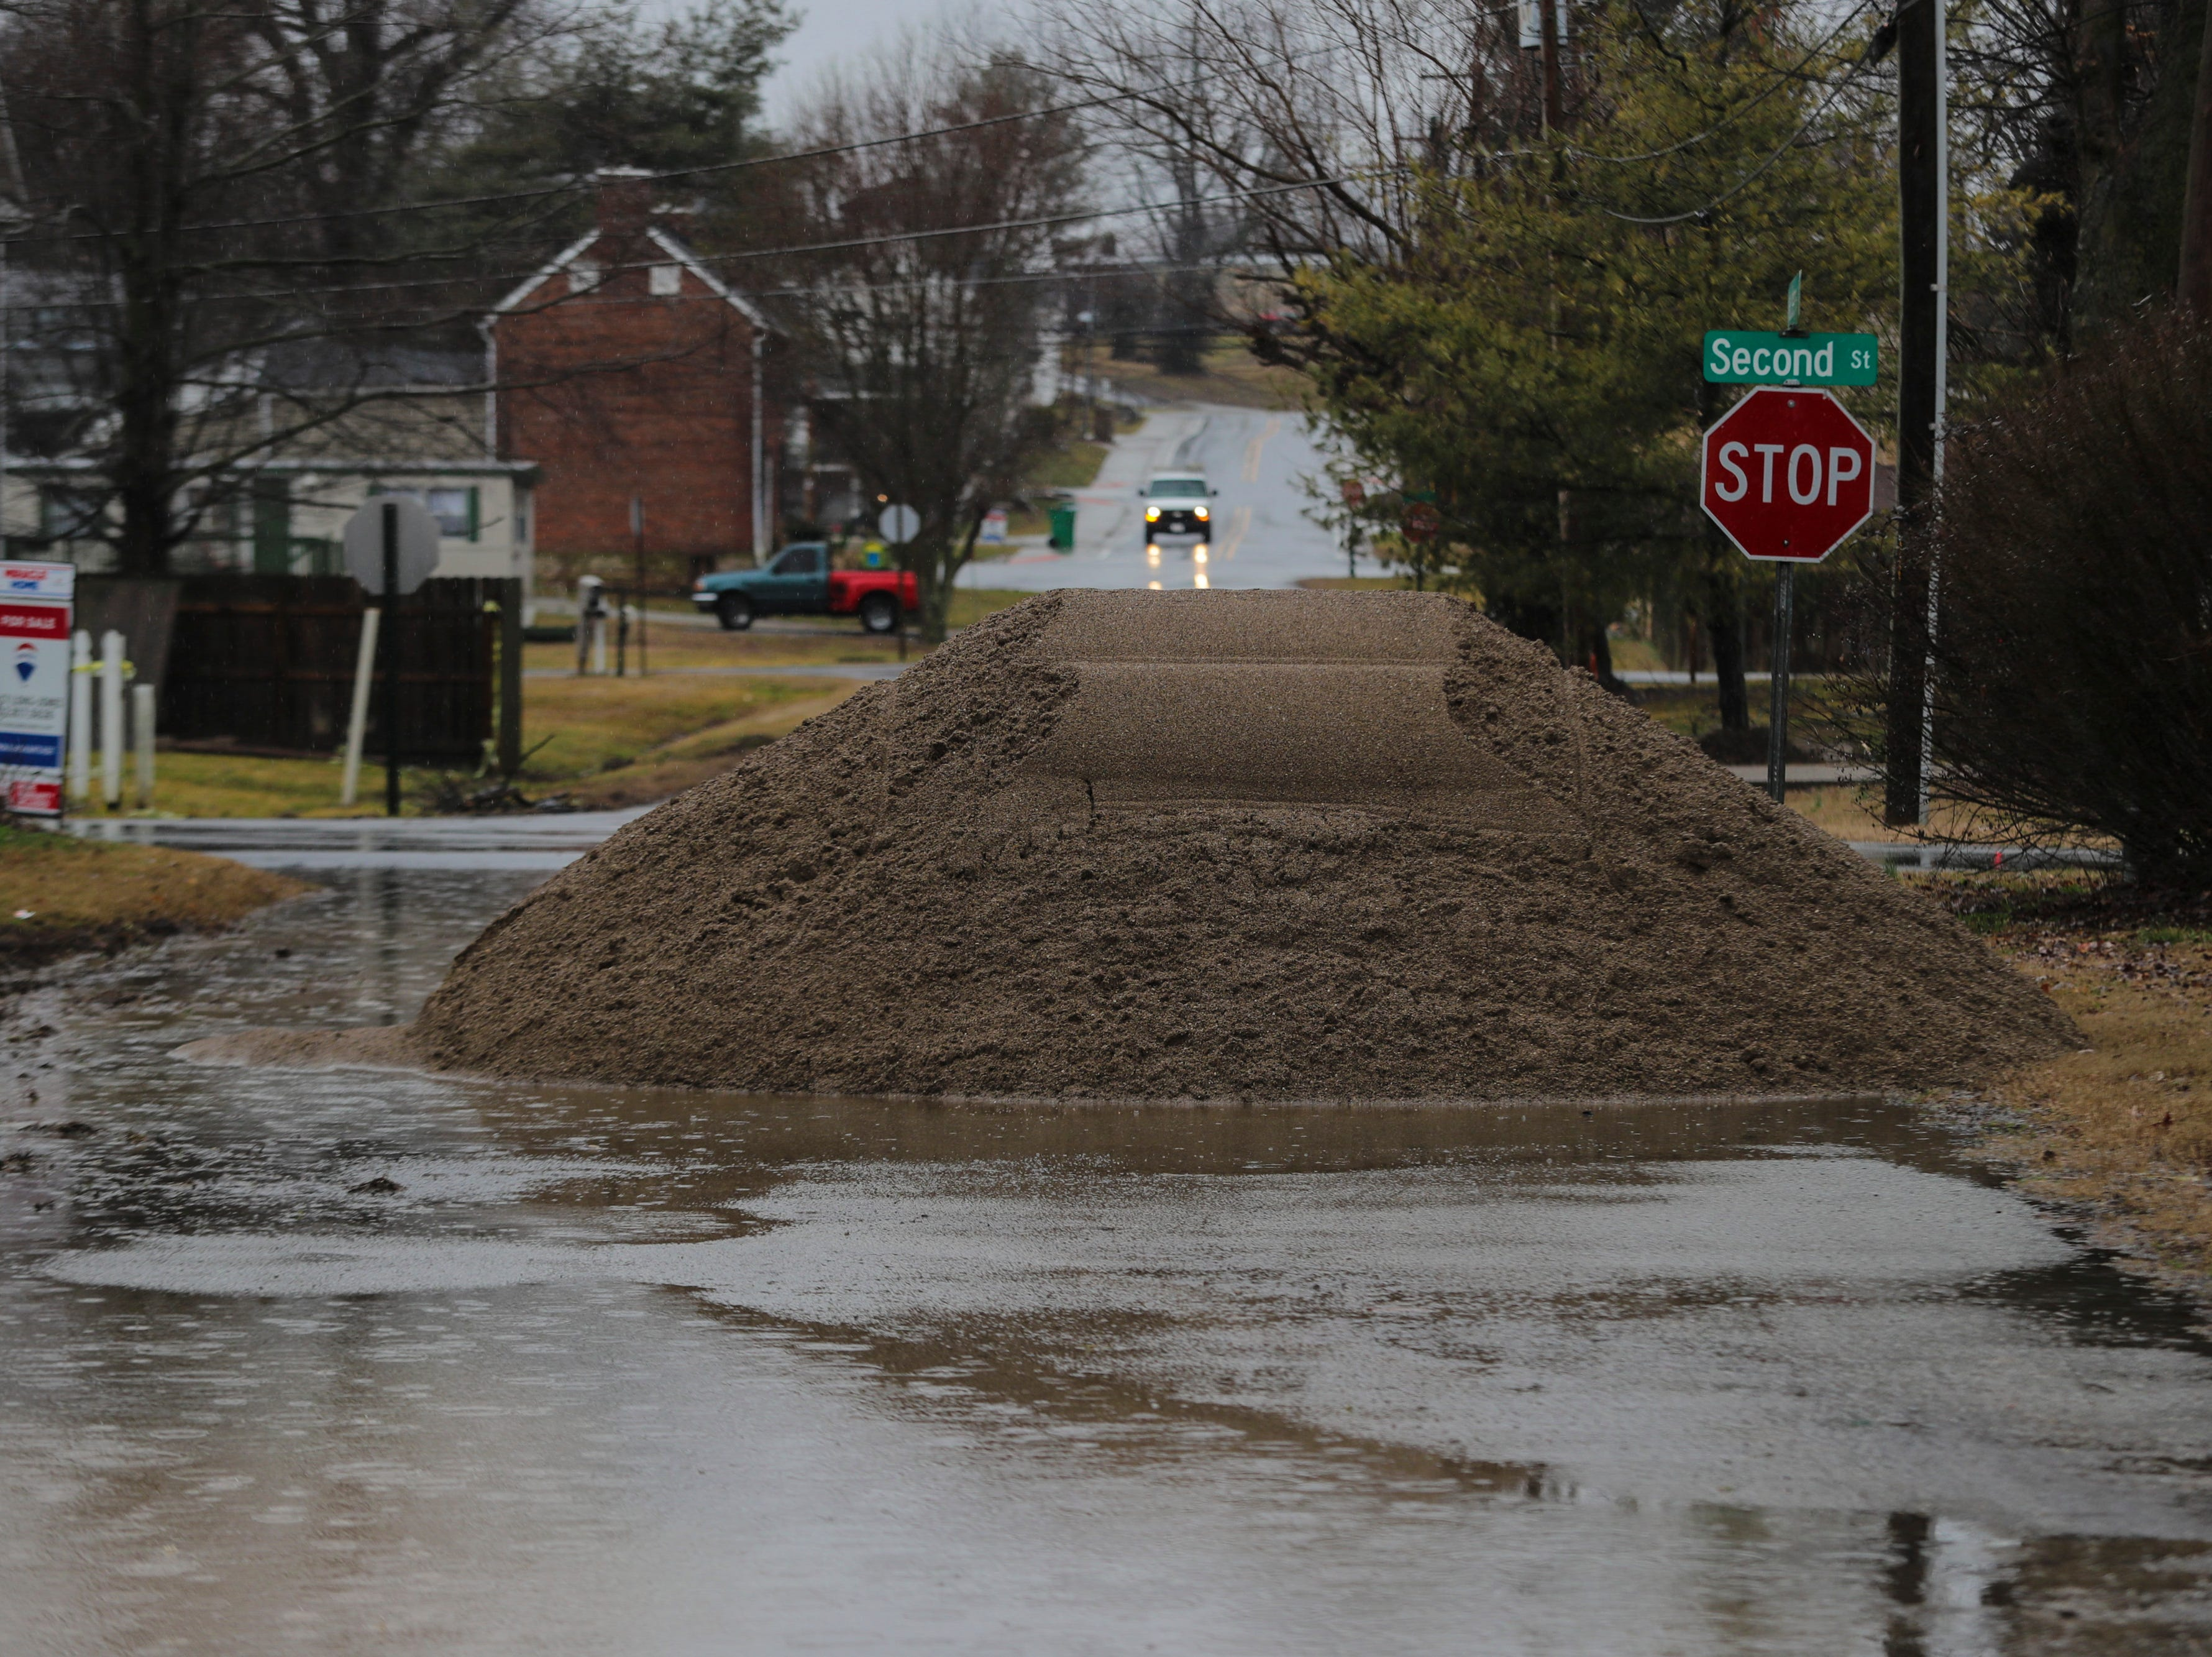 A pile of sand sits waiting to be covered in Utica, Ind. as Ohio River water levels begin to rise. Feb. 11, 2019